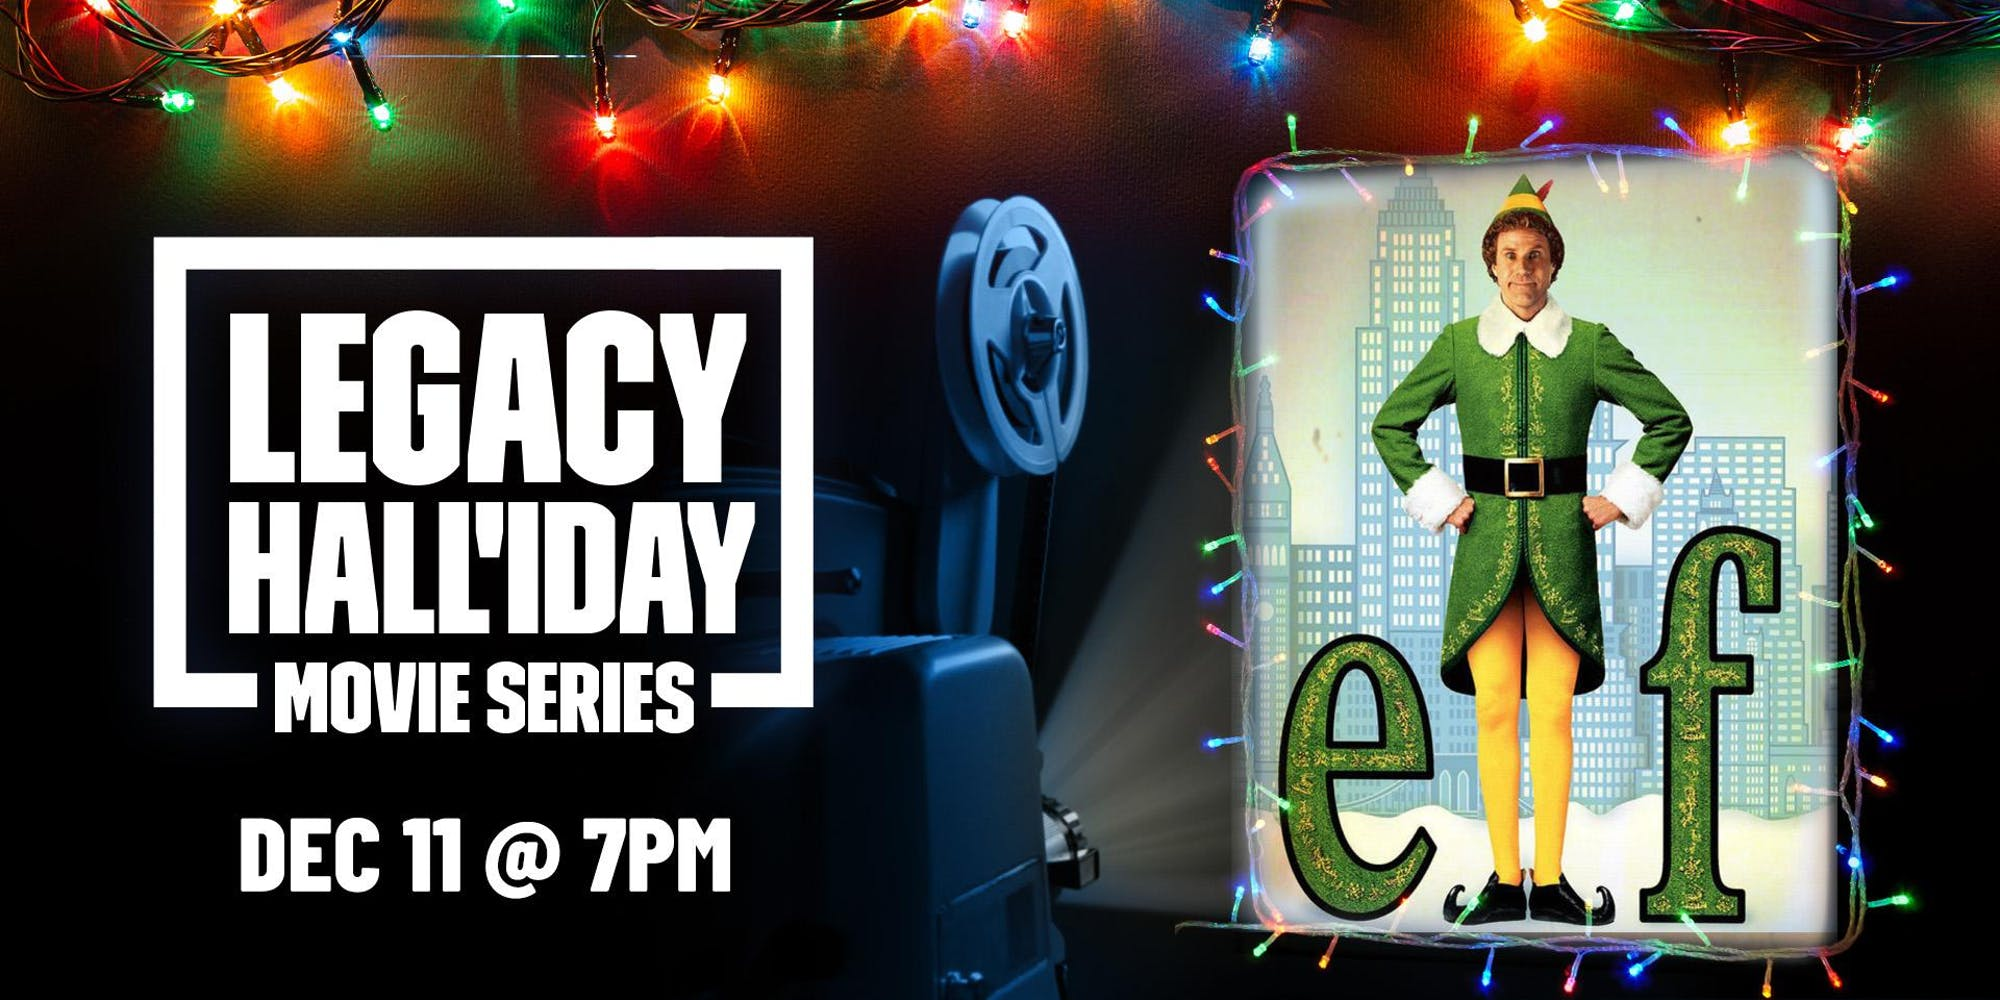 Legacy Hall'iday Movie Series: Elf - hero